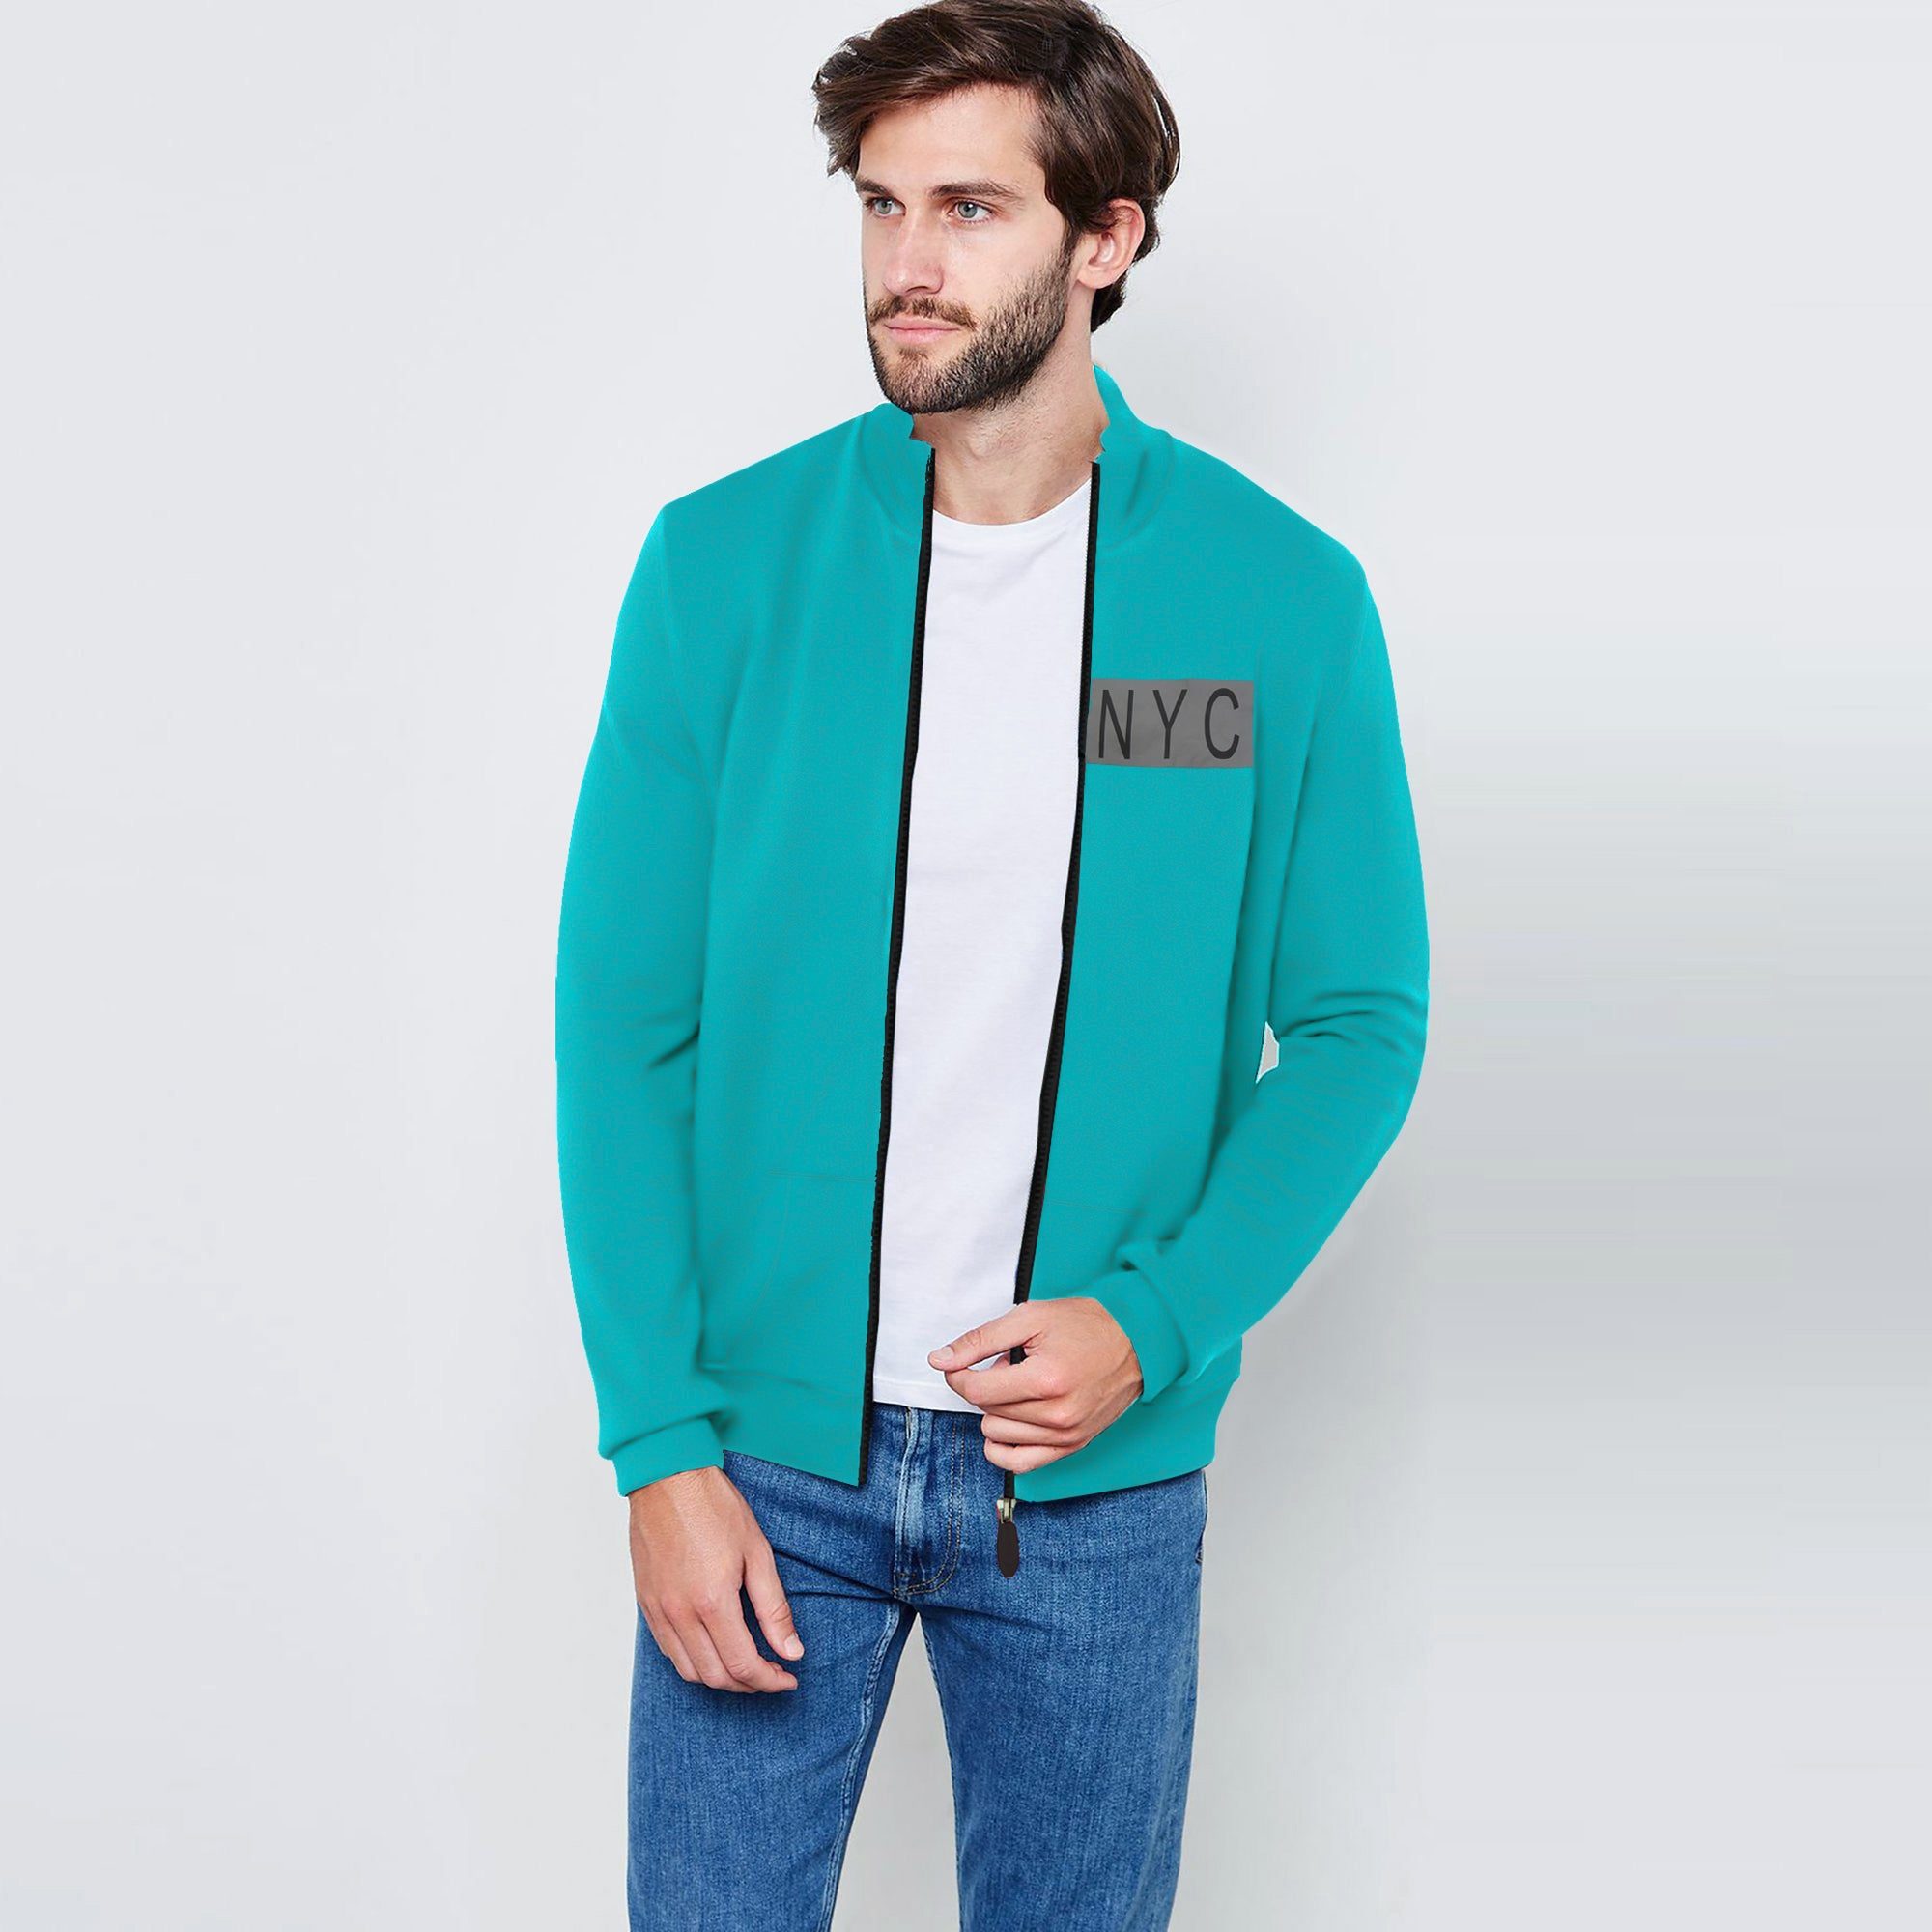 Nyc Polo Fleece Full Zipper Mock Neck Jacket For Men-Dark Cyan-SP1716